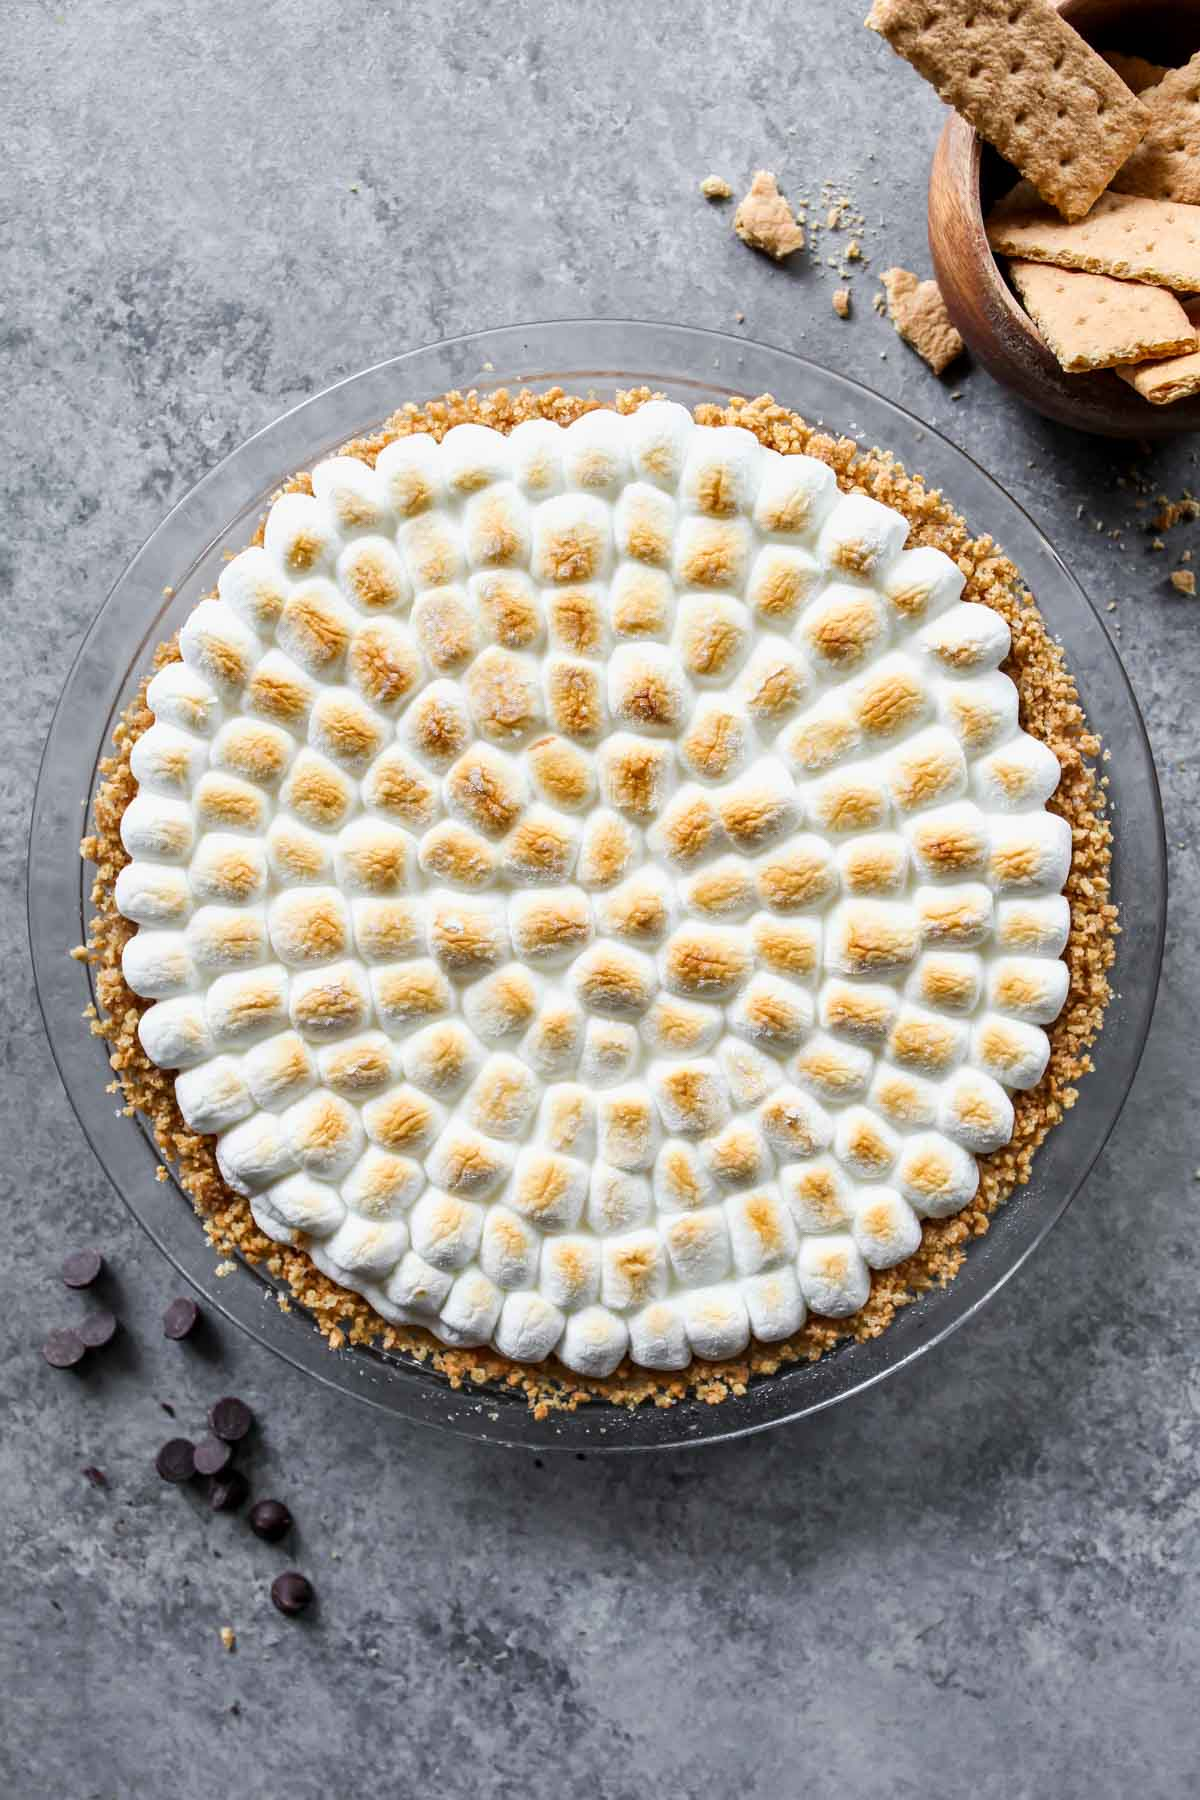 S'mores pie topped with torched marsmallows